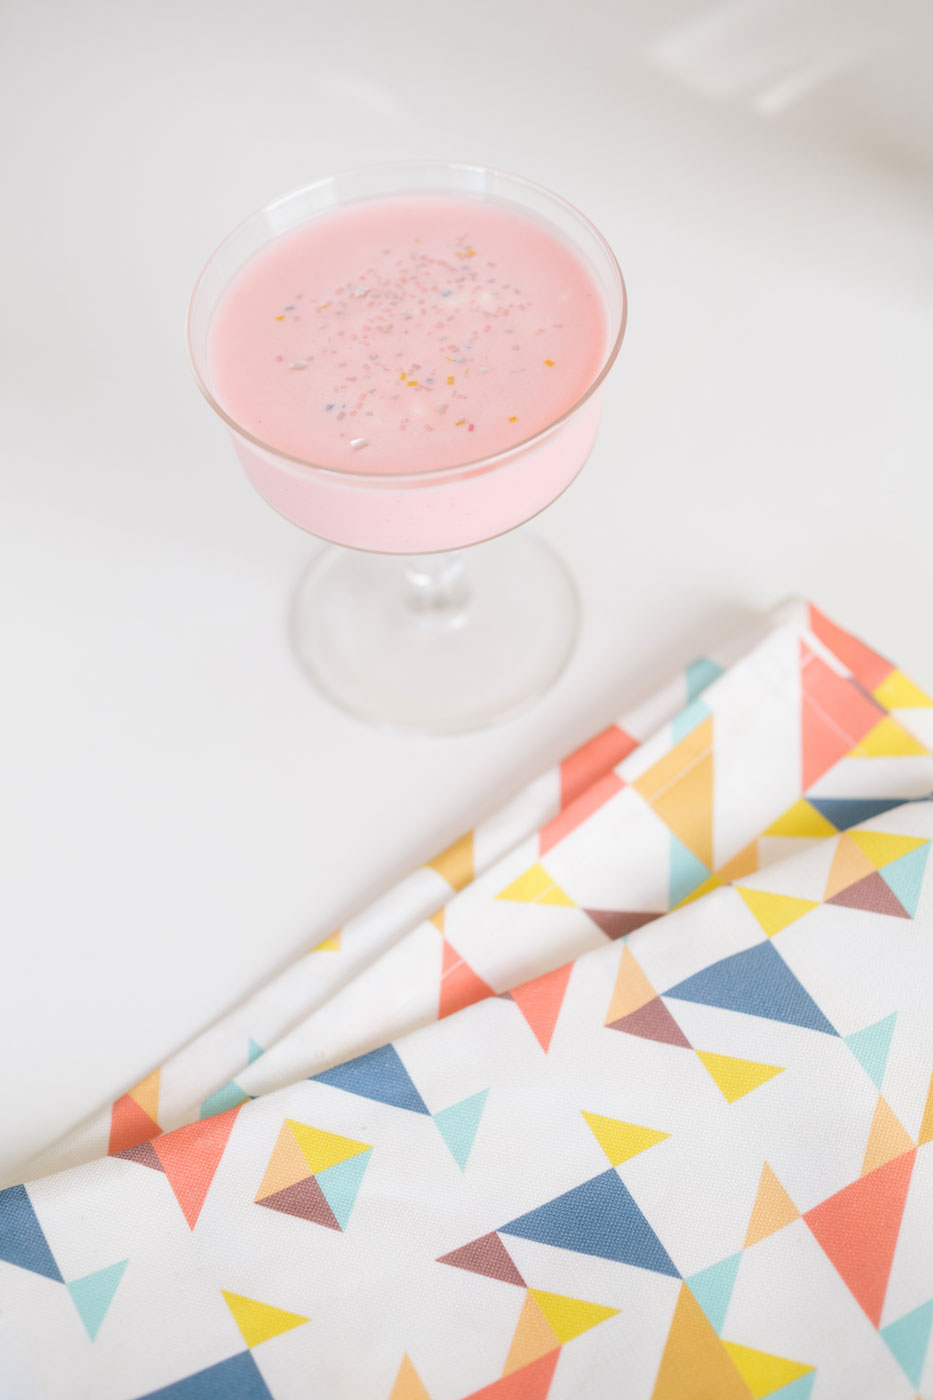 Pink-Squirrel-Cocktail-made-with-FROYO